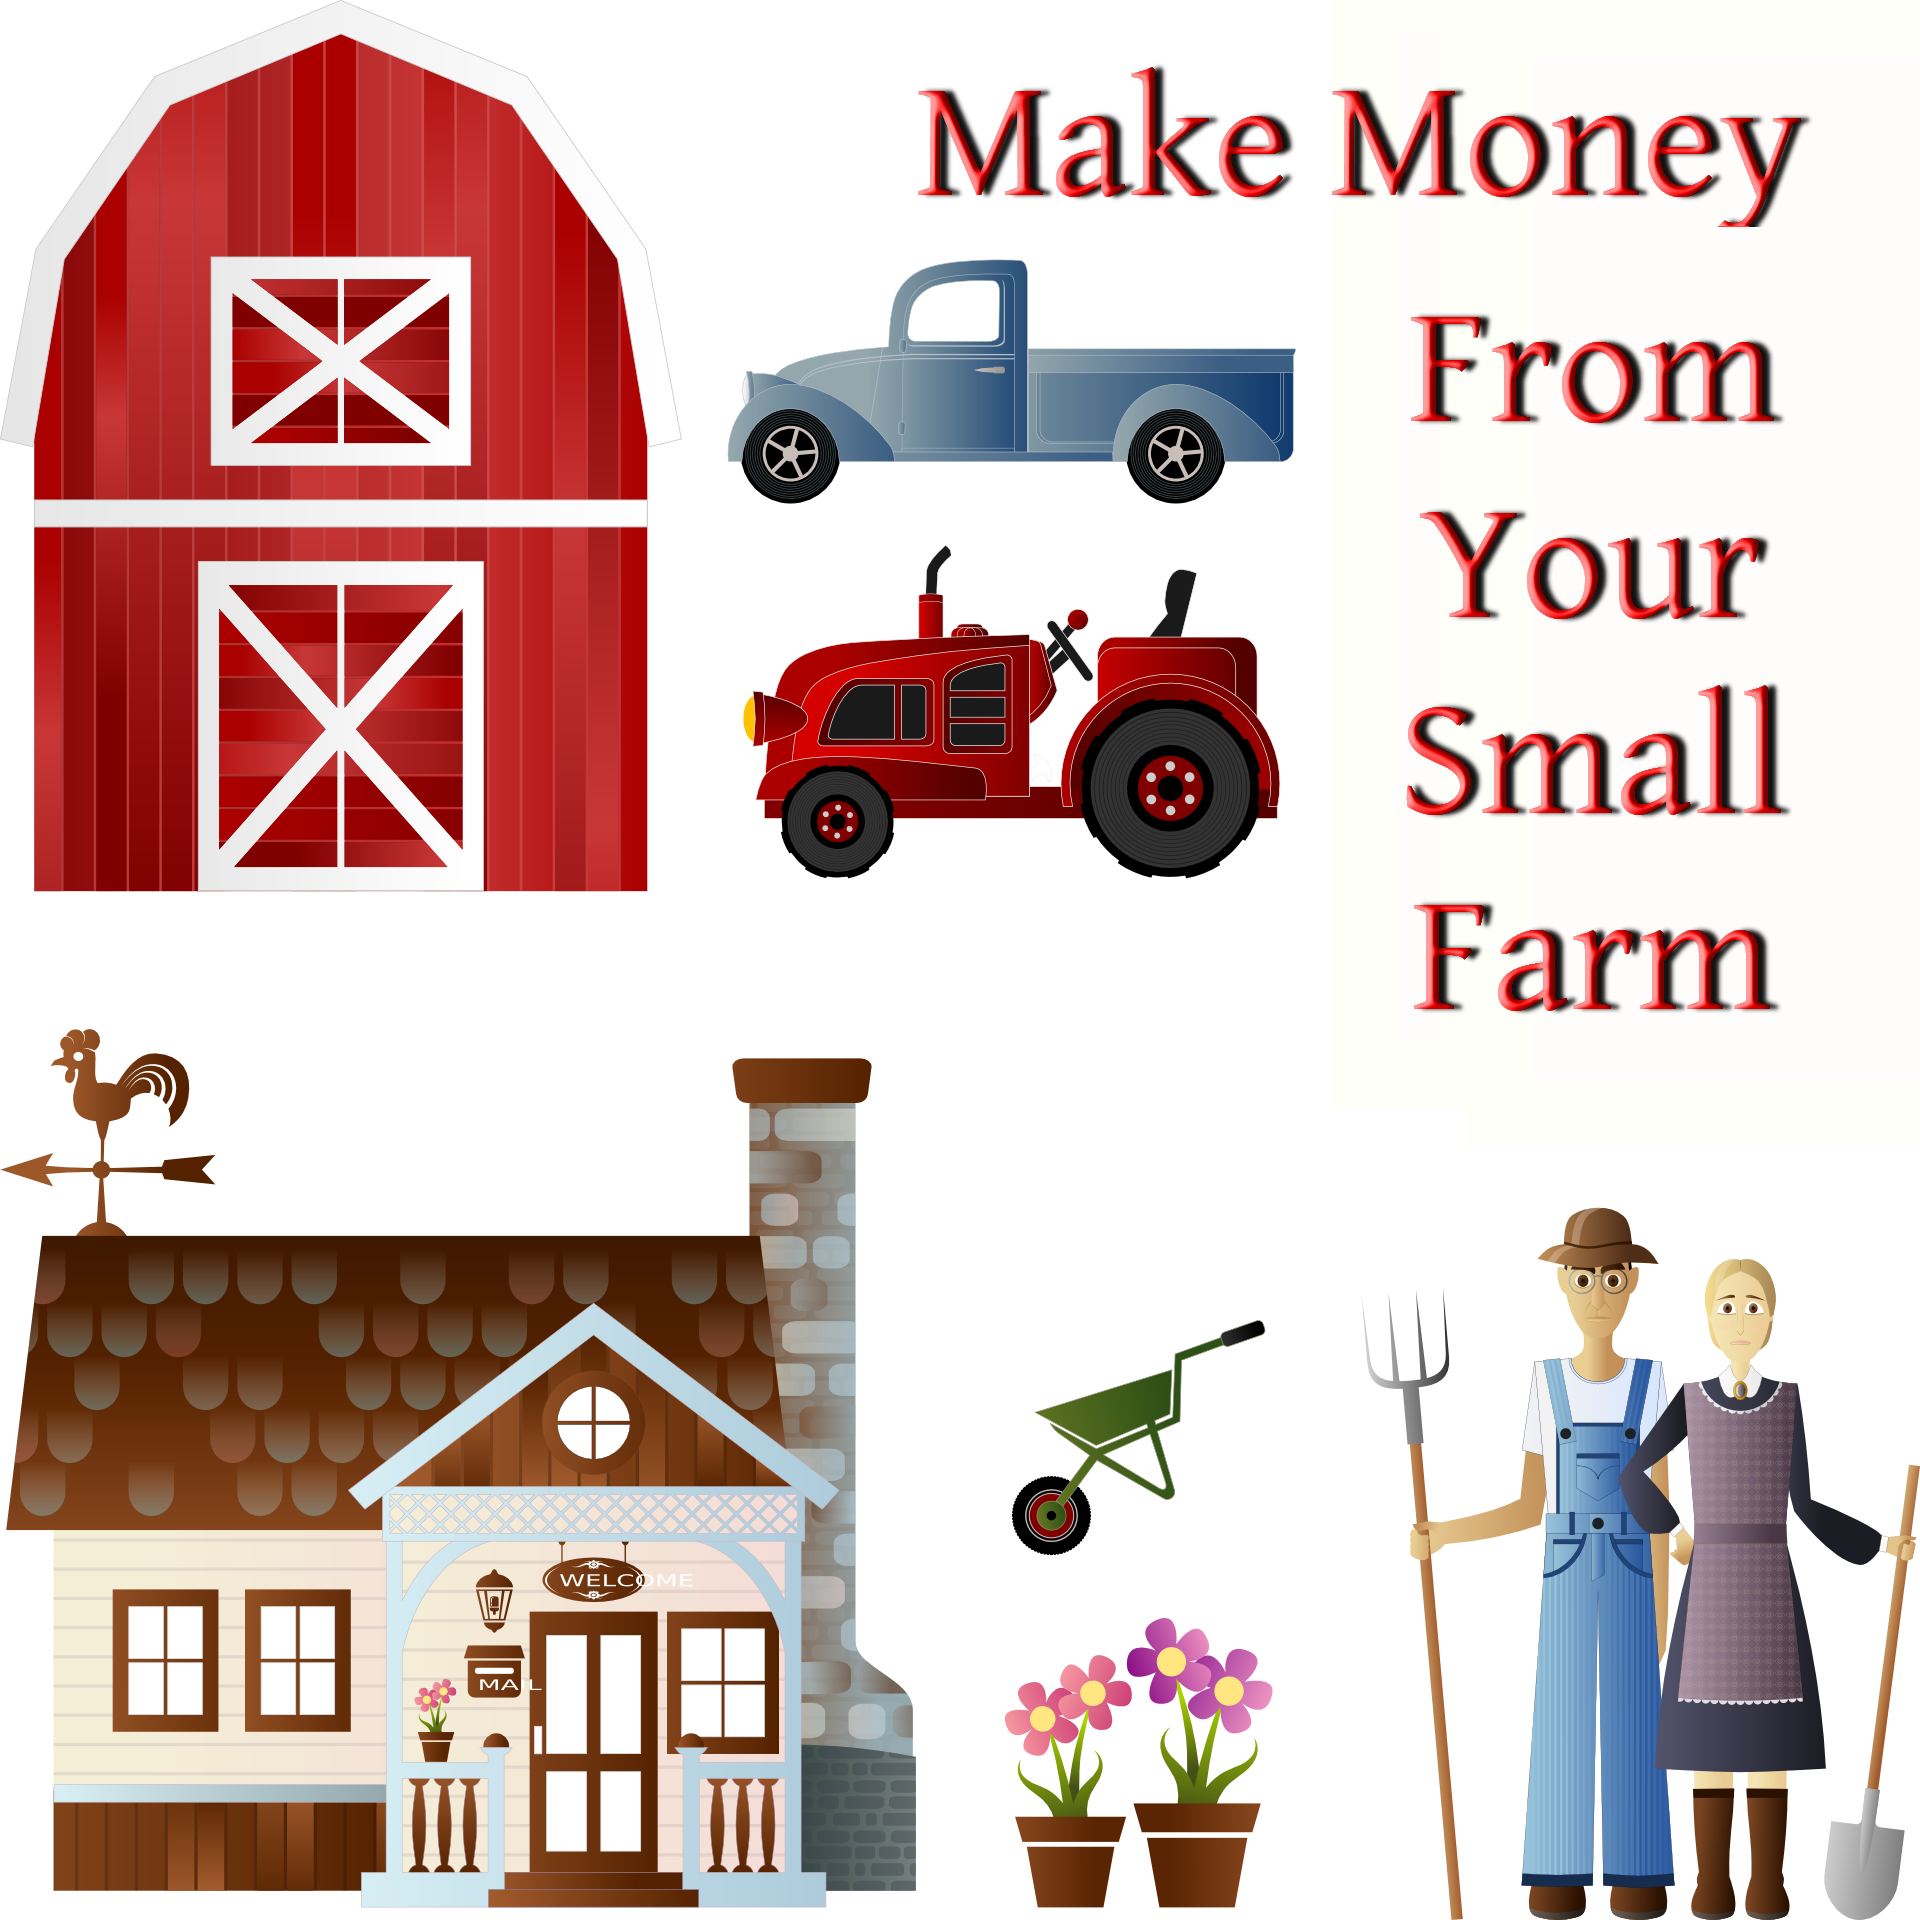 27 Ways To Make Money From Your Small Farm